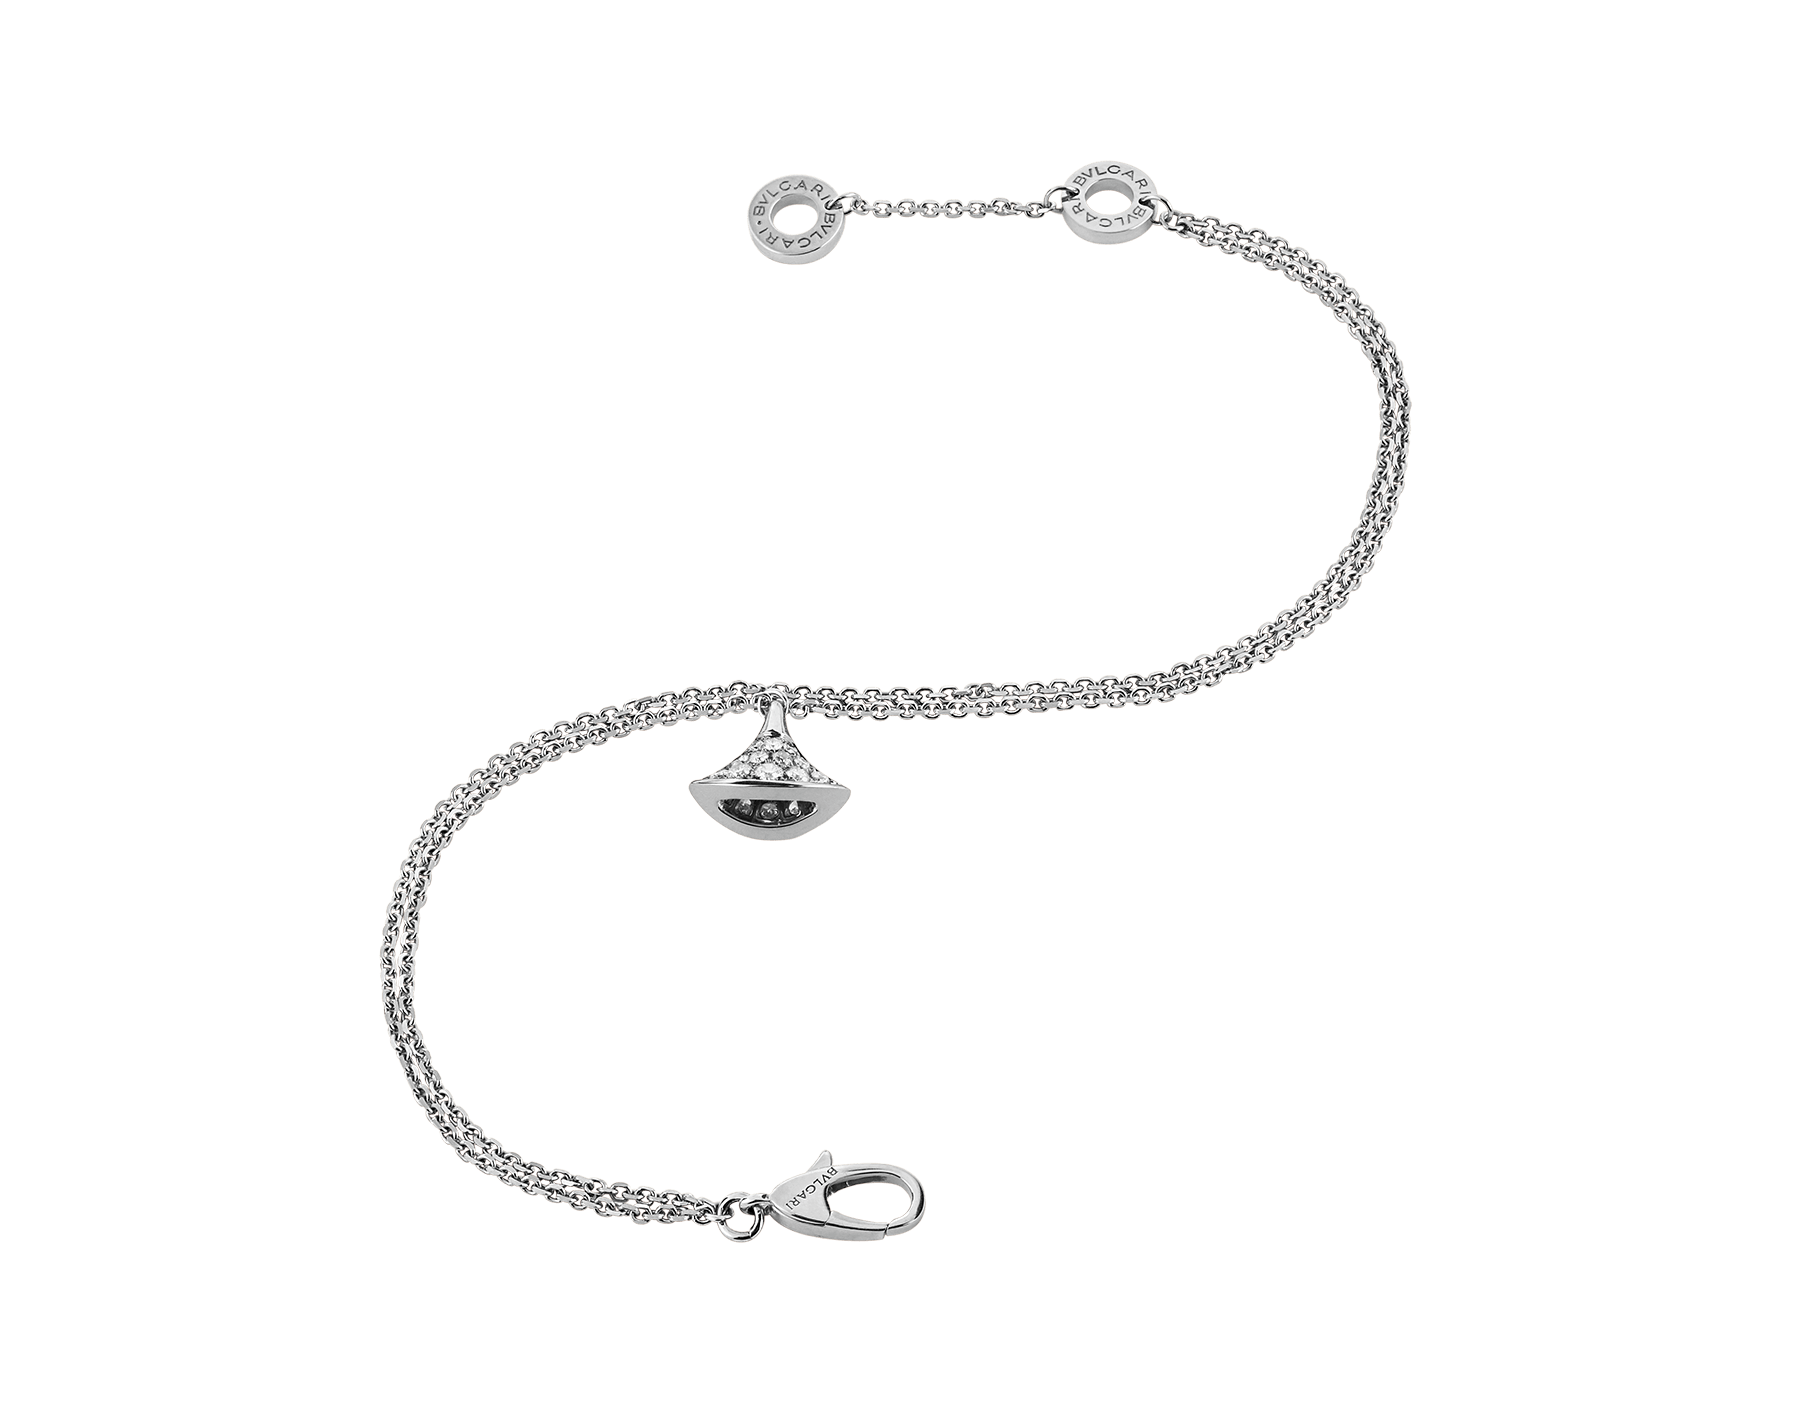 DIVAS' DREAM bracelet in 18 kt white gold with pendant set with full pavé diamonds. BR857493 image 2